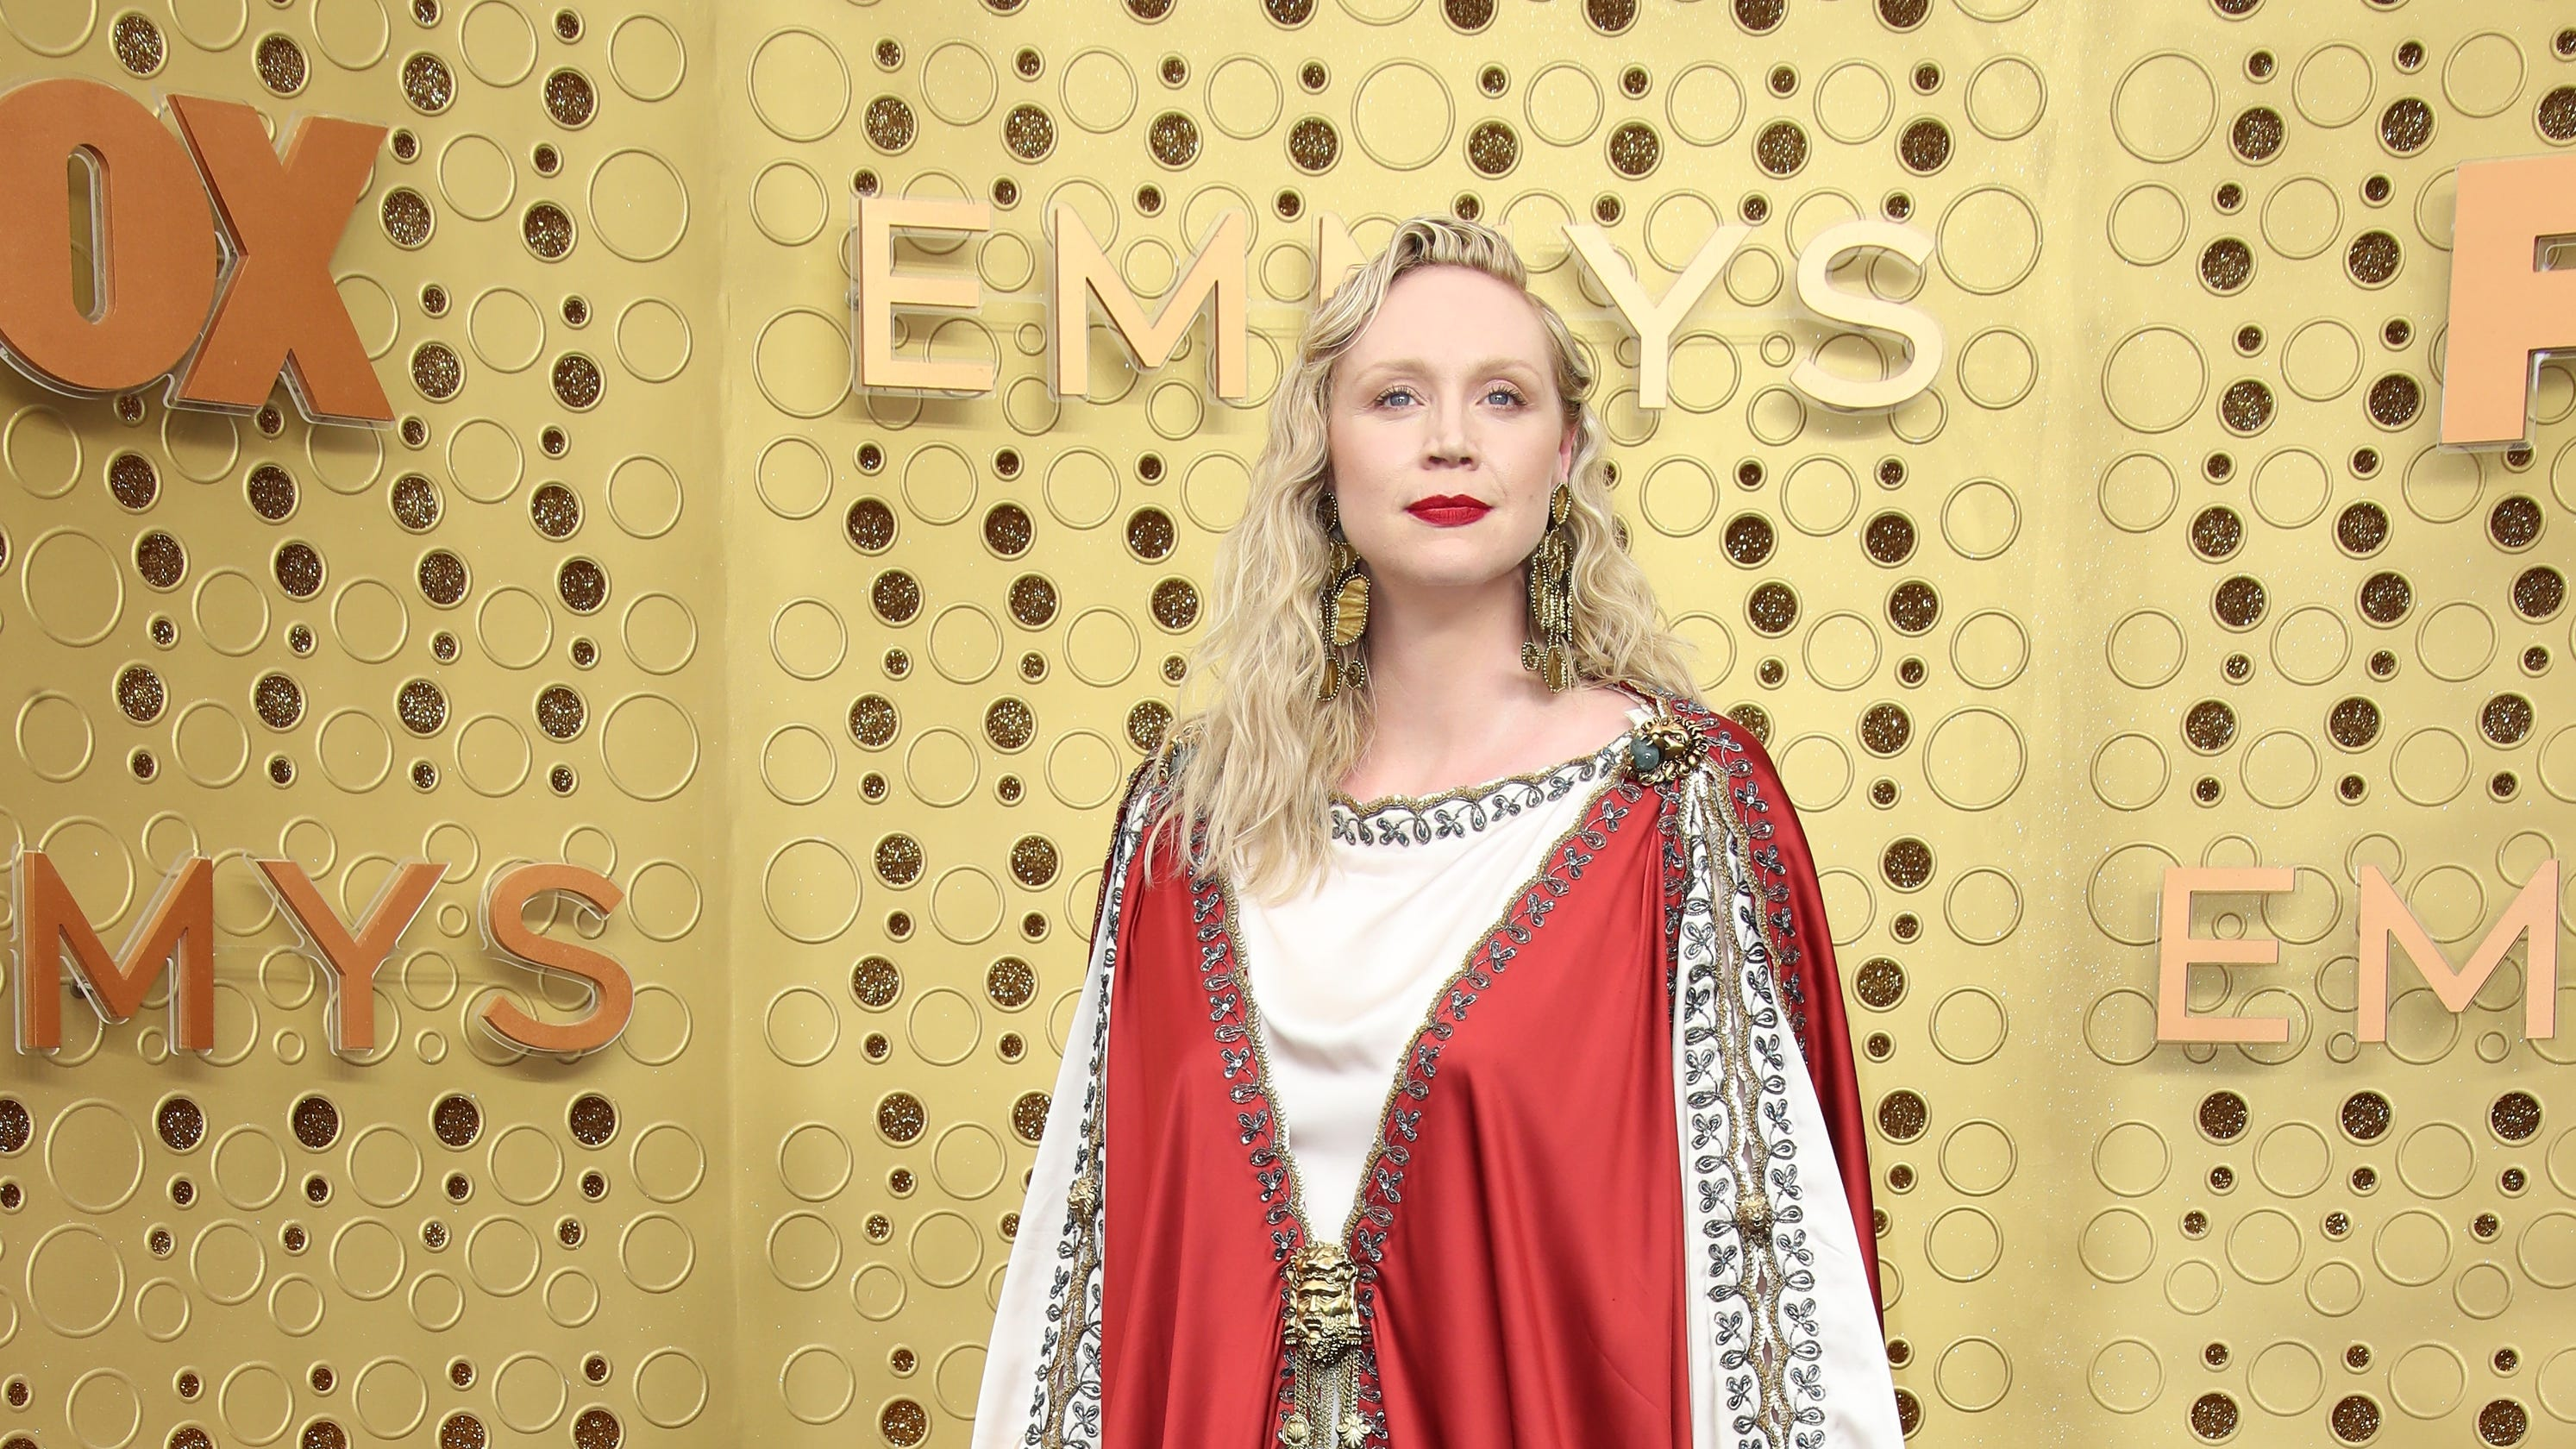 'She has risen': Gwendoline Christie compared to the Pope on the red carpet